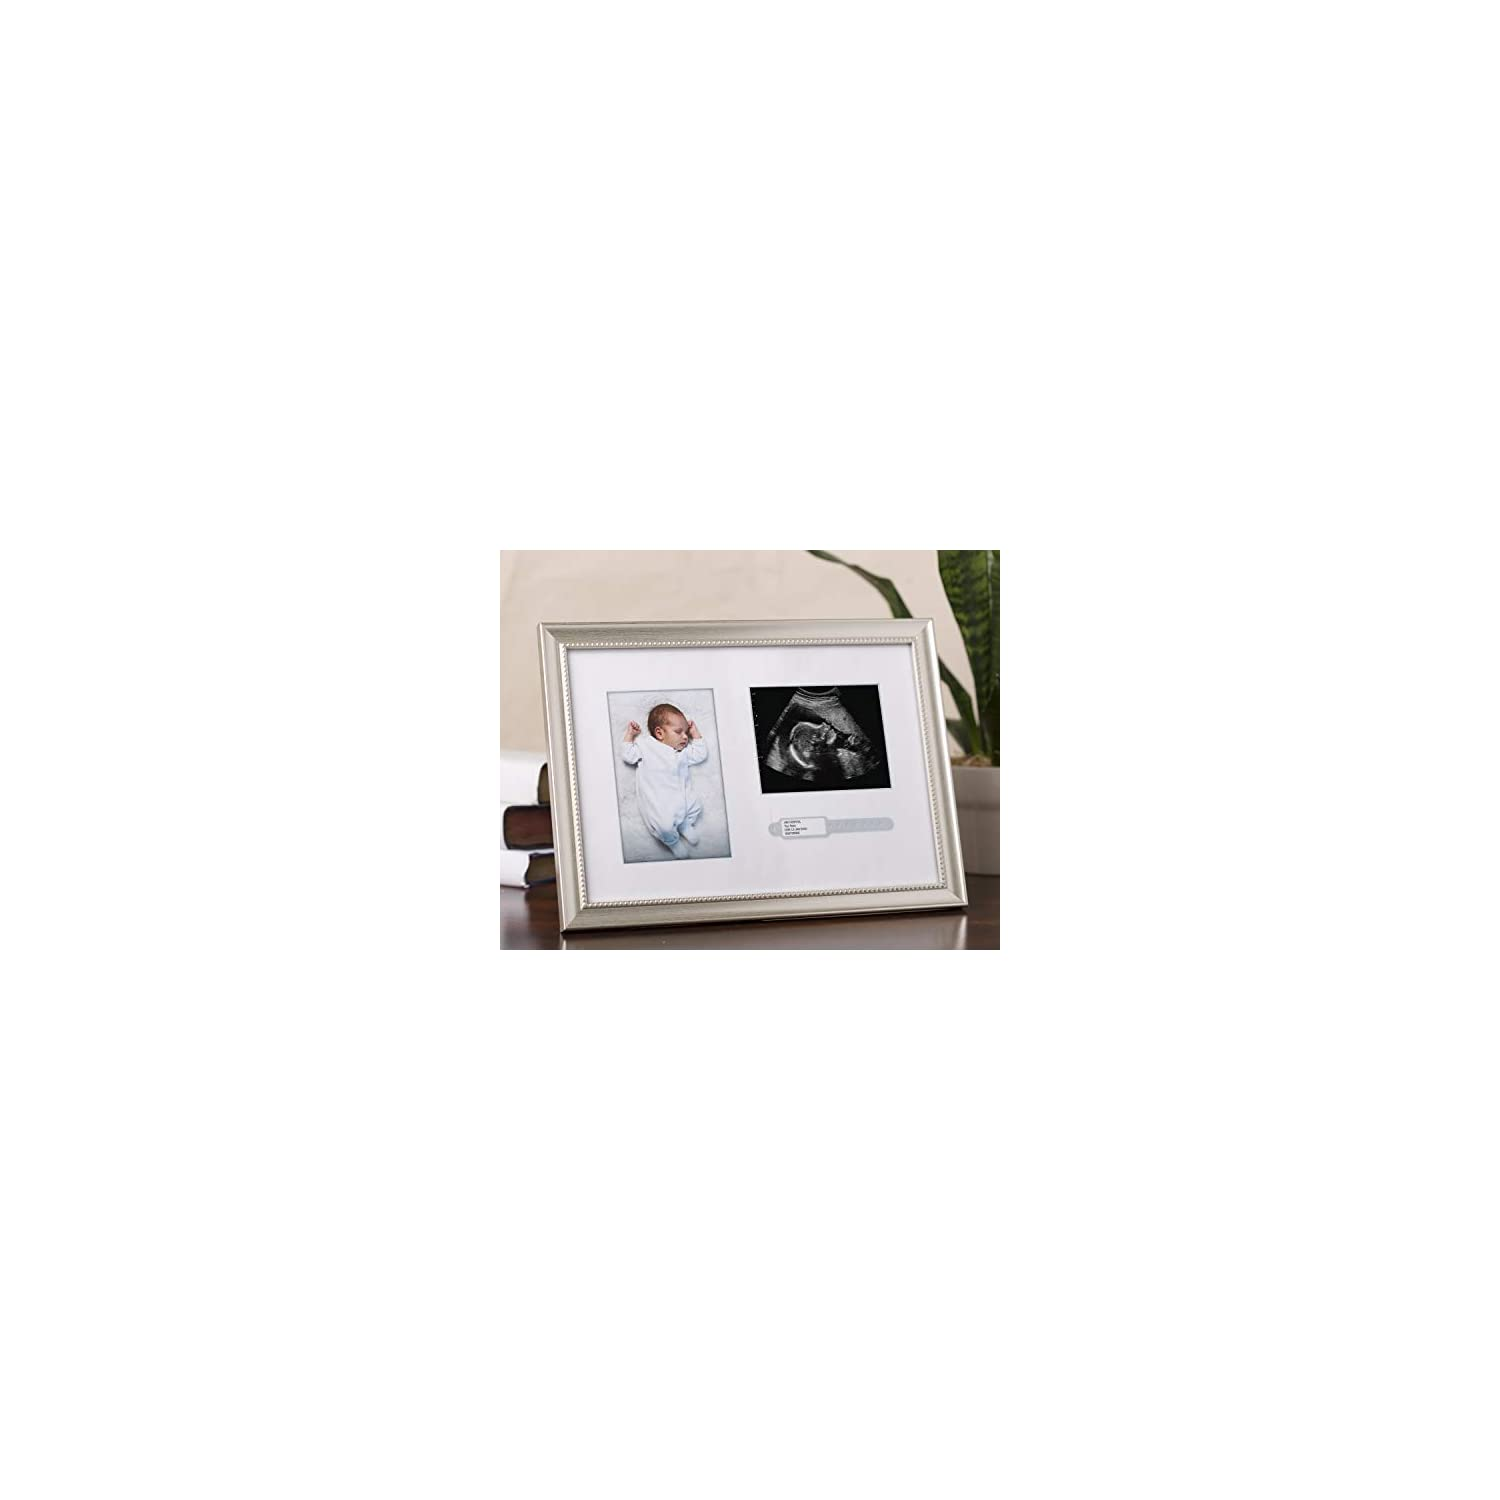 Lil Peach Photo, Bracelet, and Sonogram Frame, Makes Perfect Nursery Décor, Creative Baby Gift, or Addition to Baby Registry, Silver